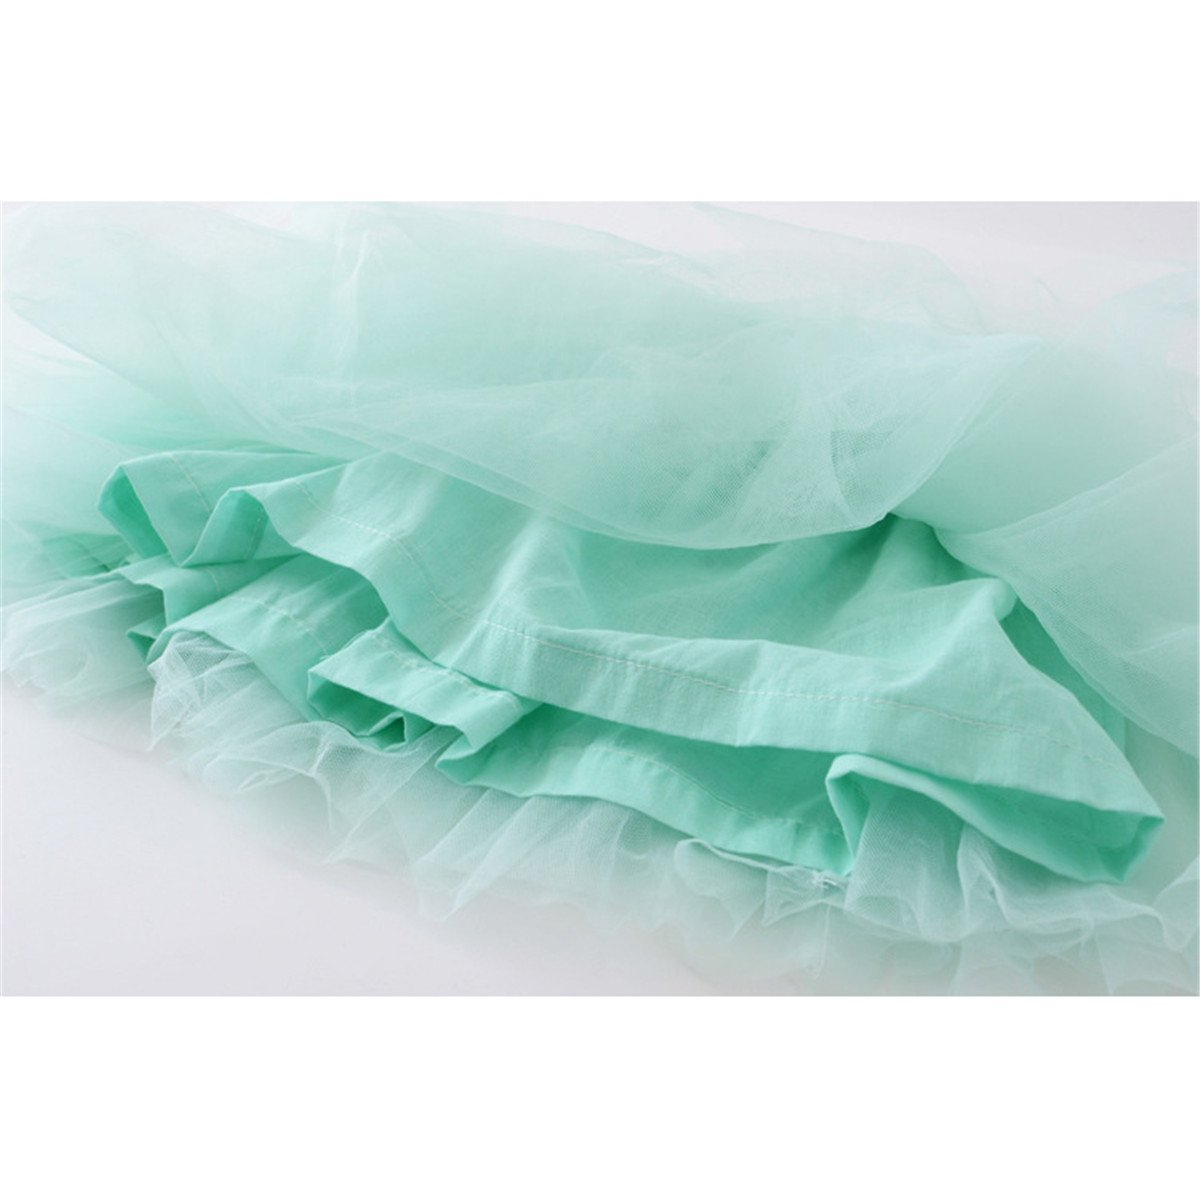 LKXHarleya Summer Style Lovely Ball Gown Dance Mini Skirt Girls Tutu Skirt for 2-7 Years Old Kids Skirt